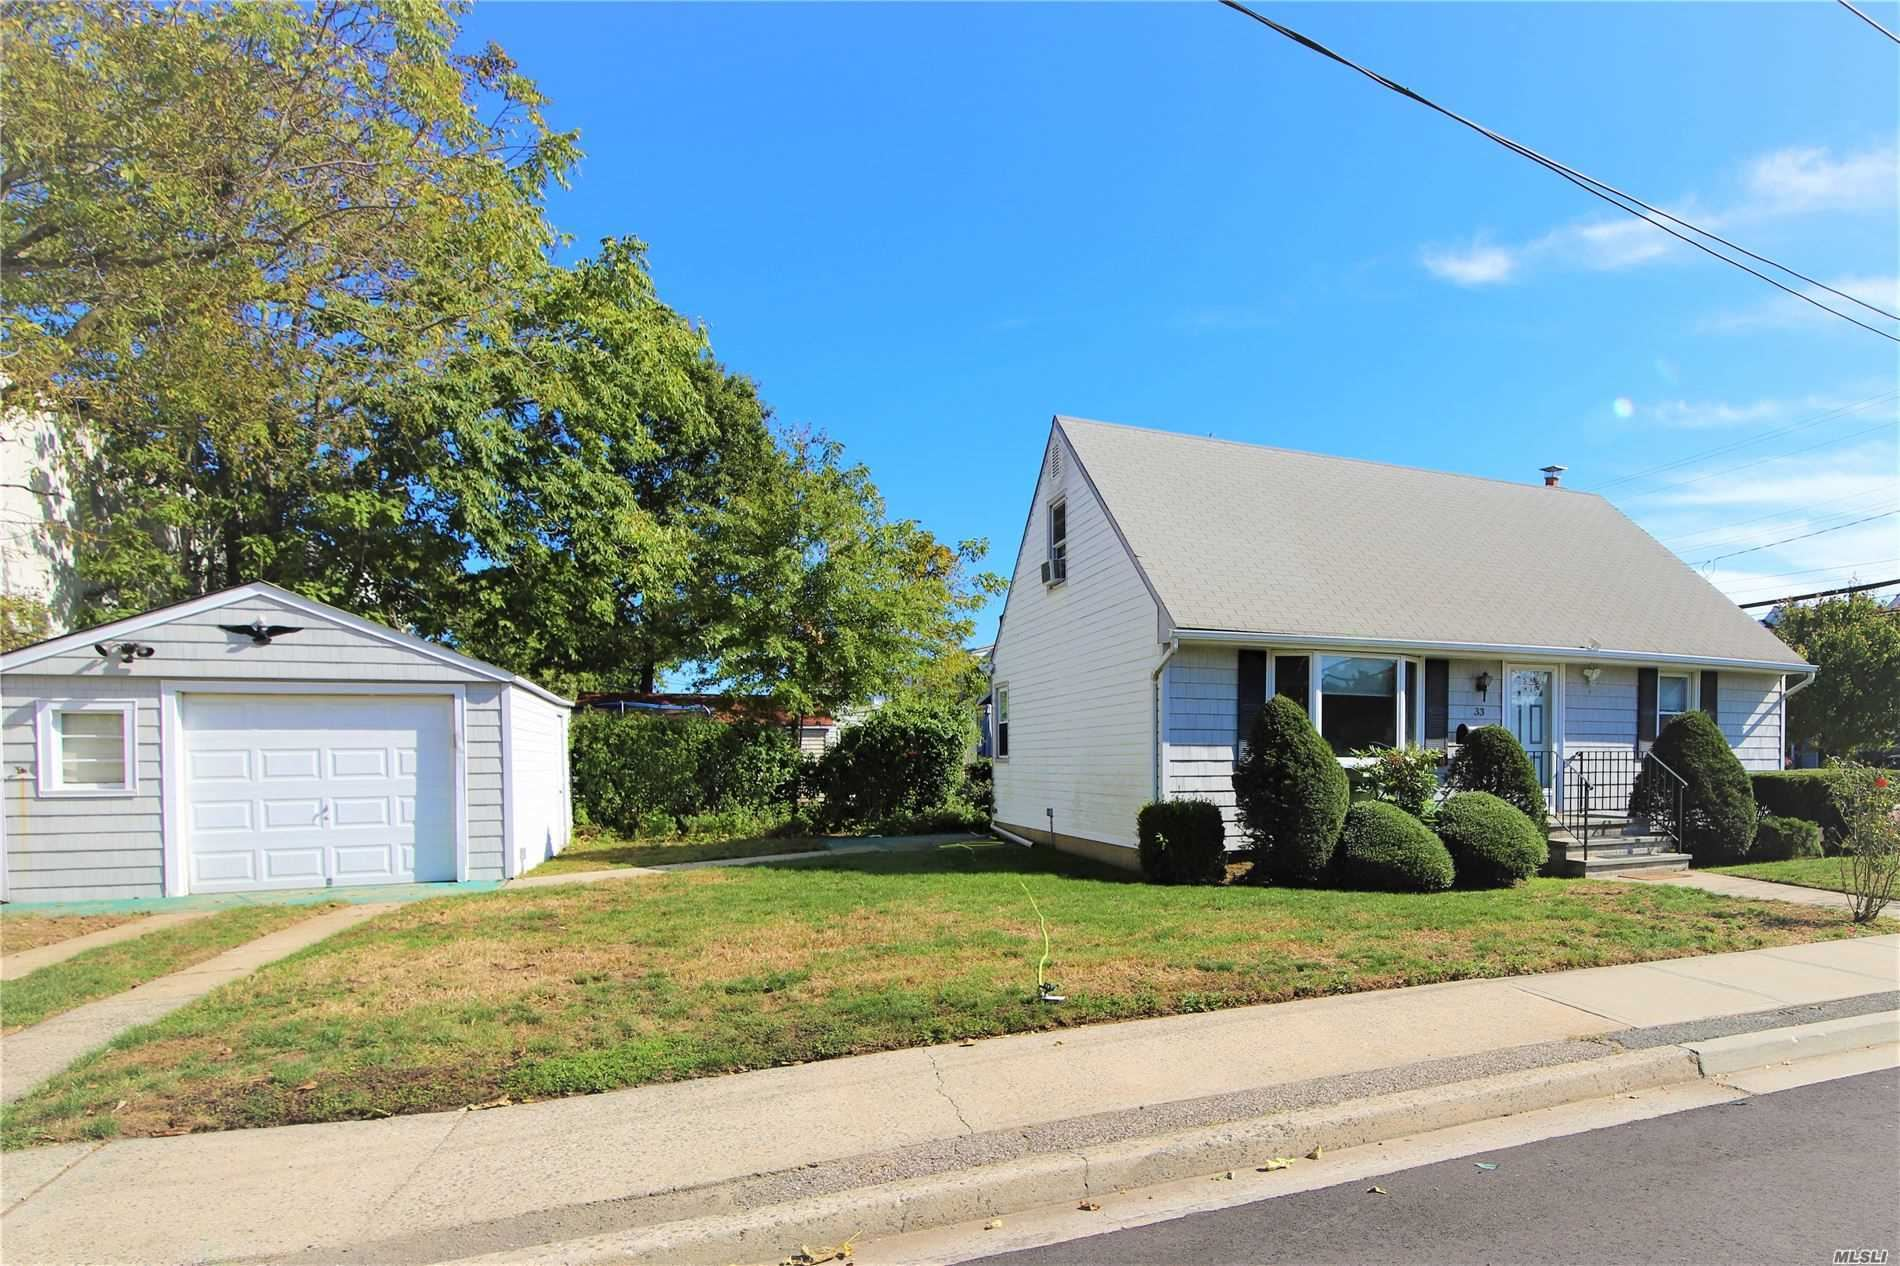 33 Power Street, Hicksville, NY 11801 - MLS#: 3173850